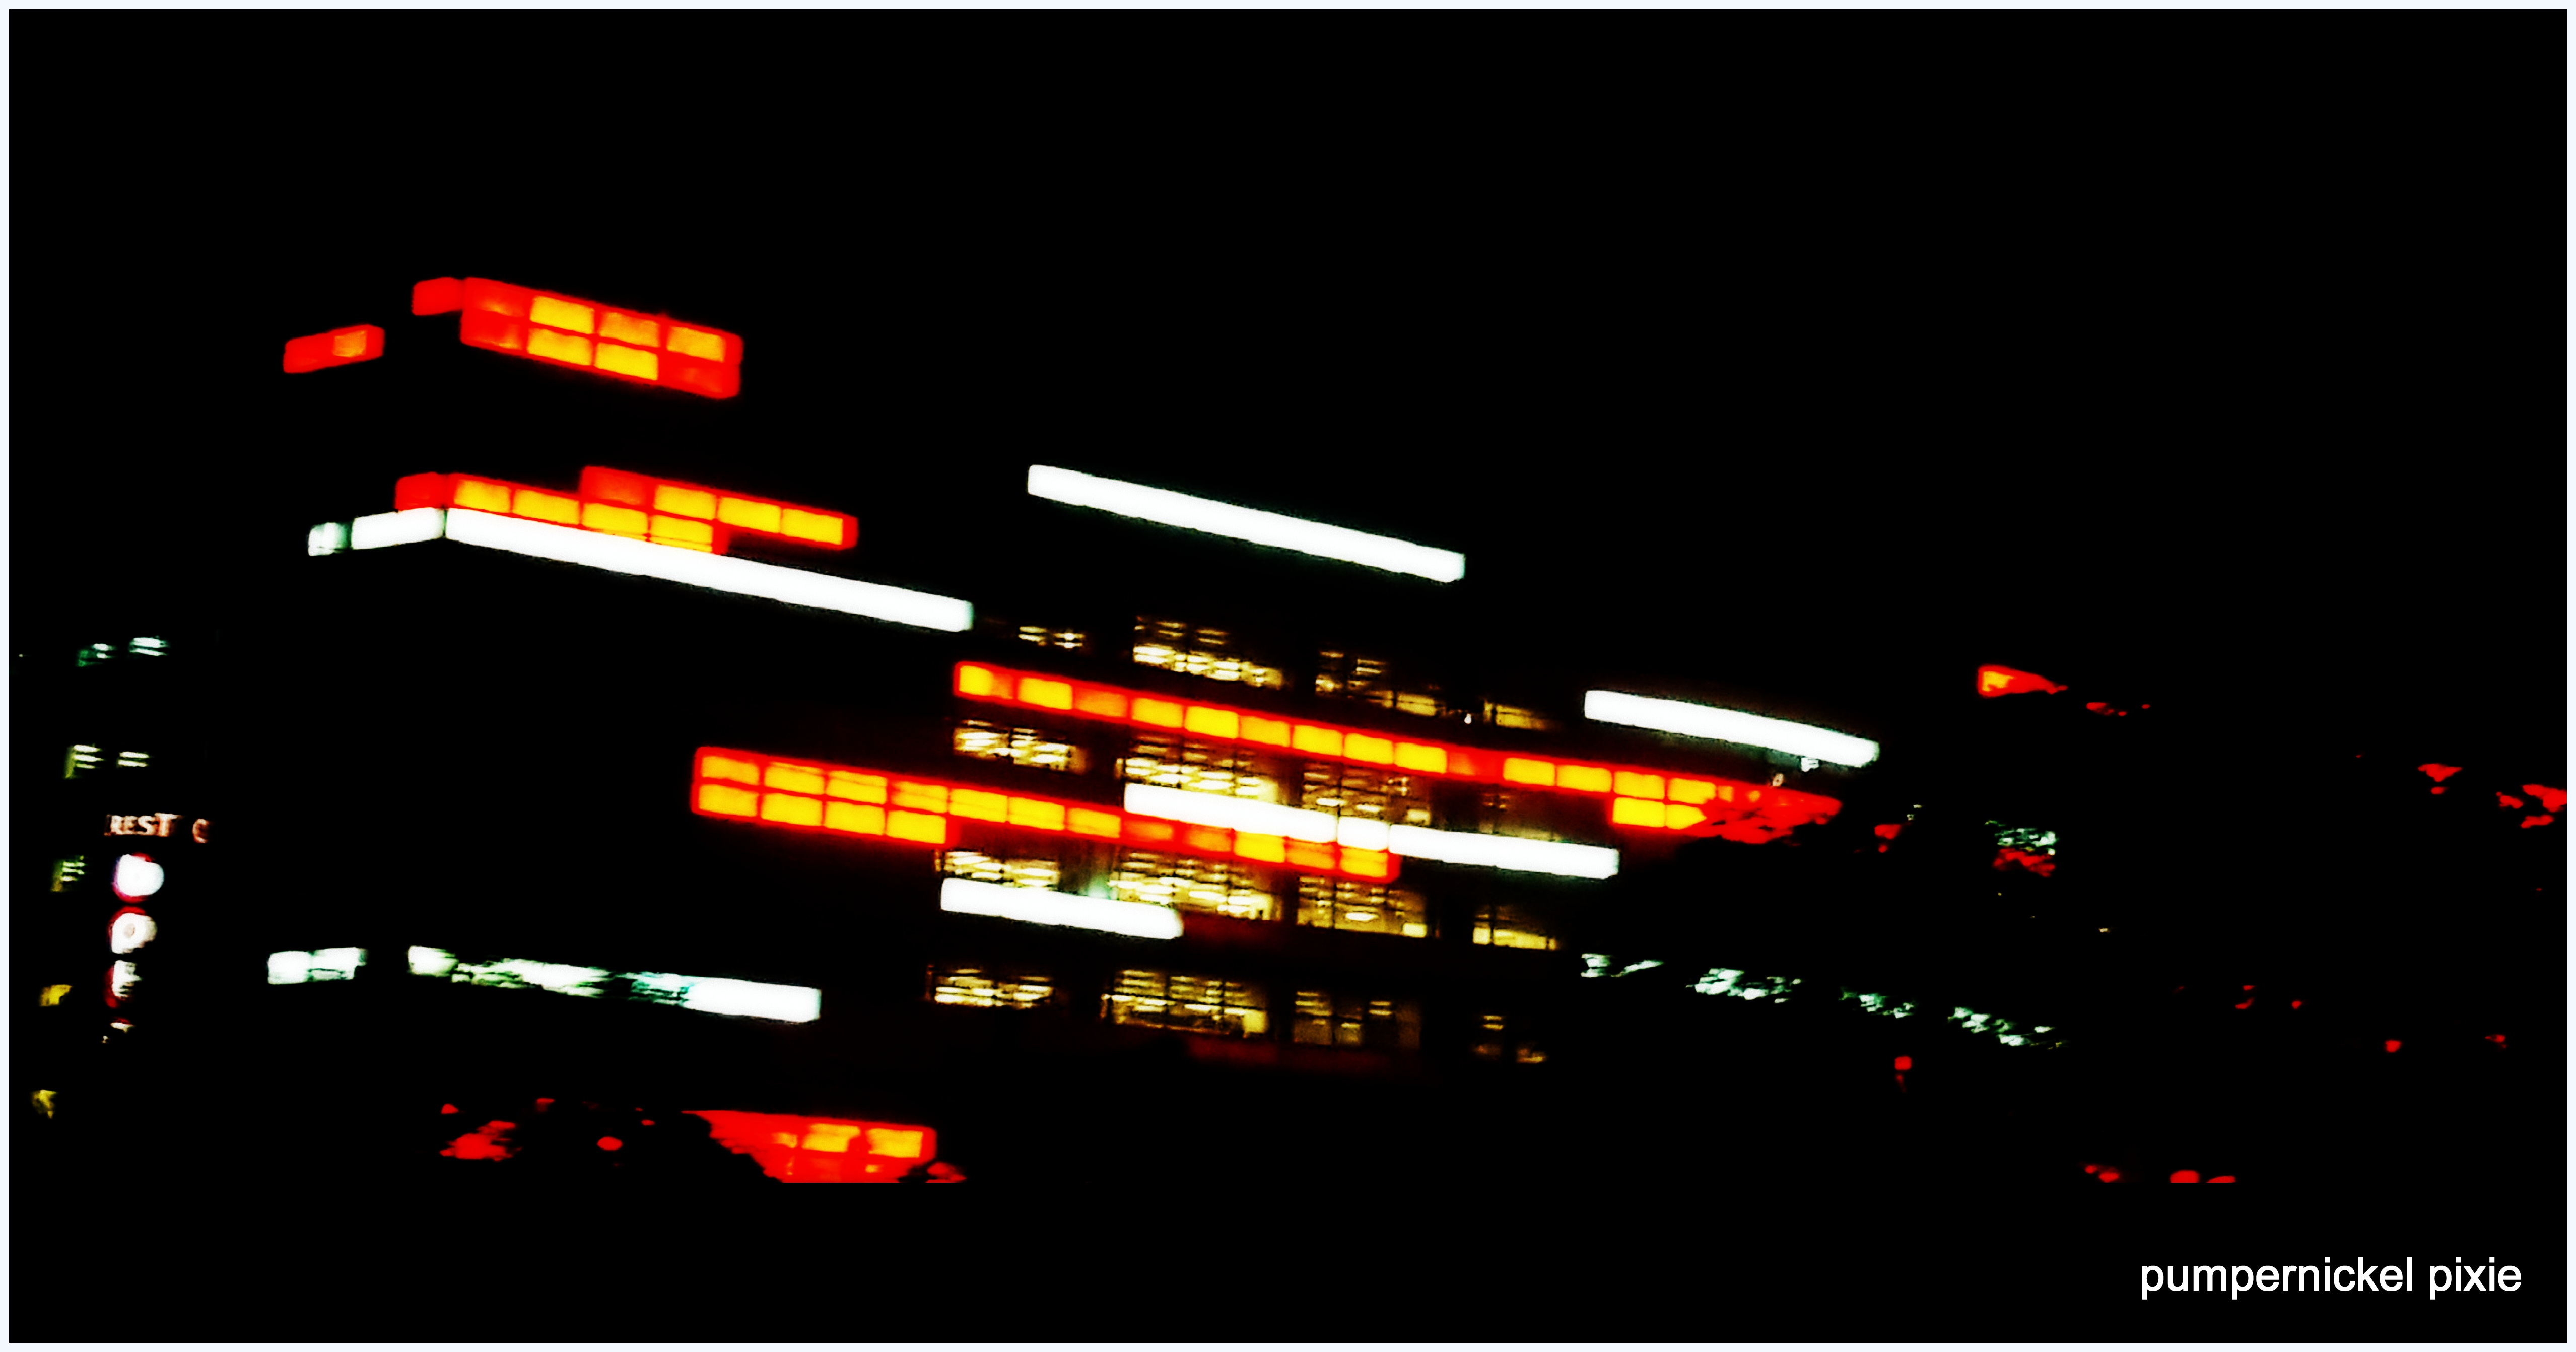 night lights, city lights, night photography, airtel gurgaon, building at night, a photo a week, photography, pumpernickel pixie